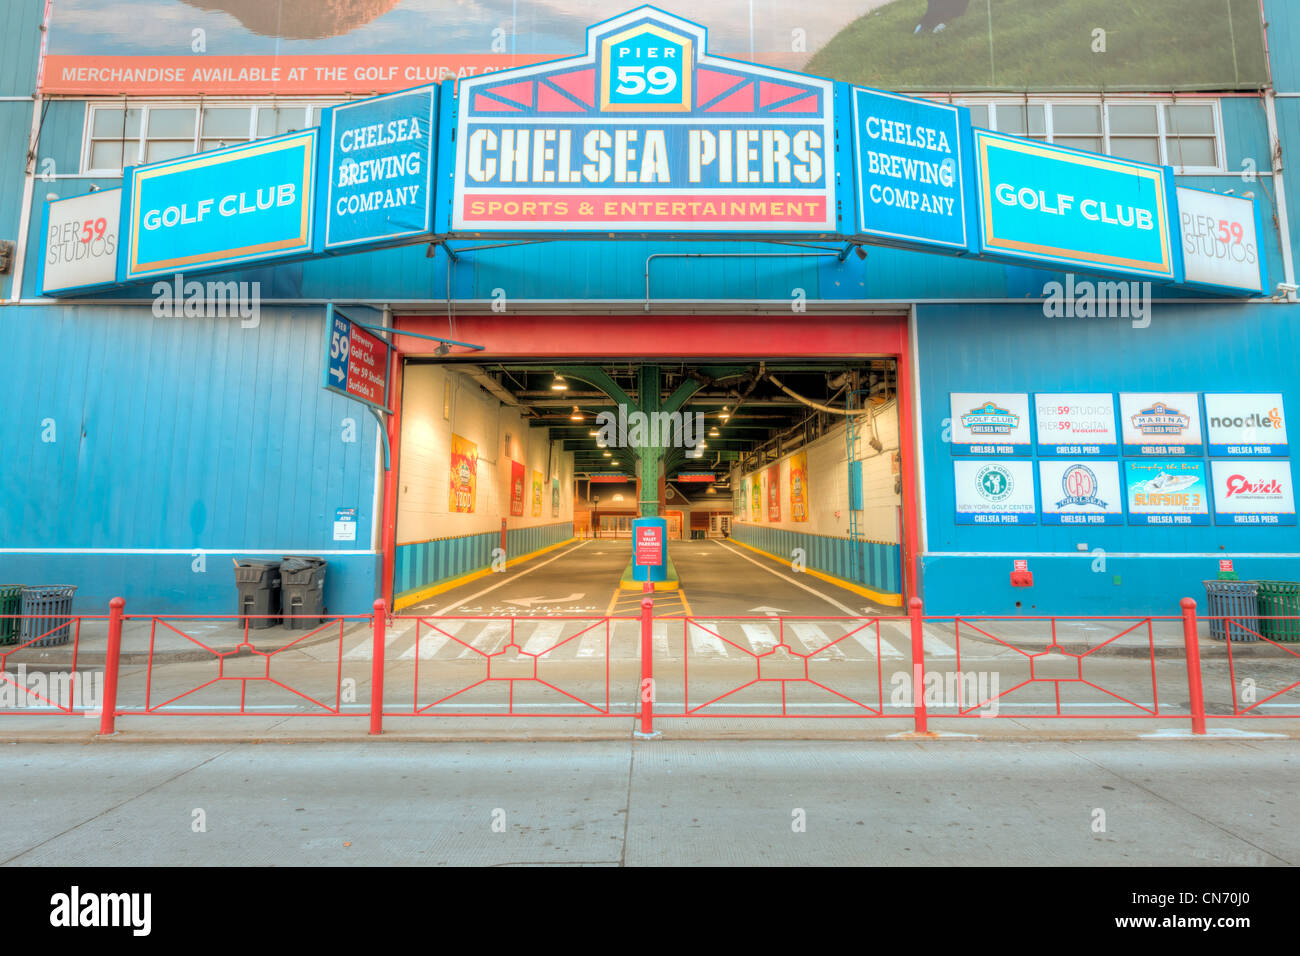 Chelsea piers new york city stock photos chelsea piers for Ny city parking garages